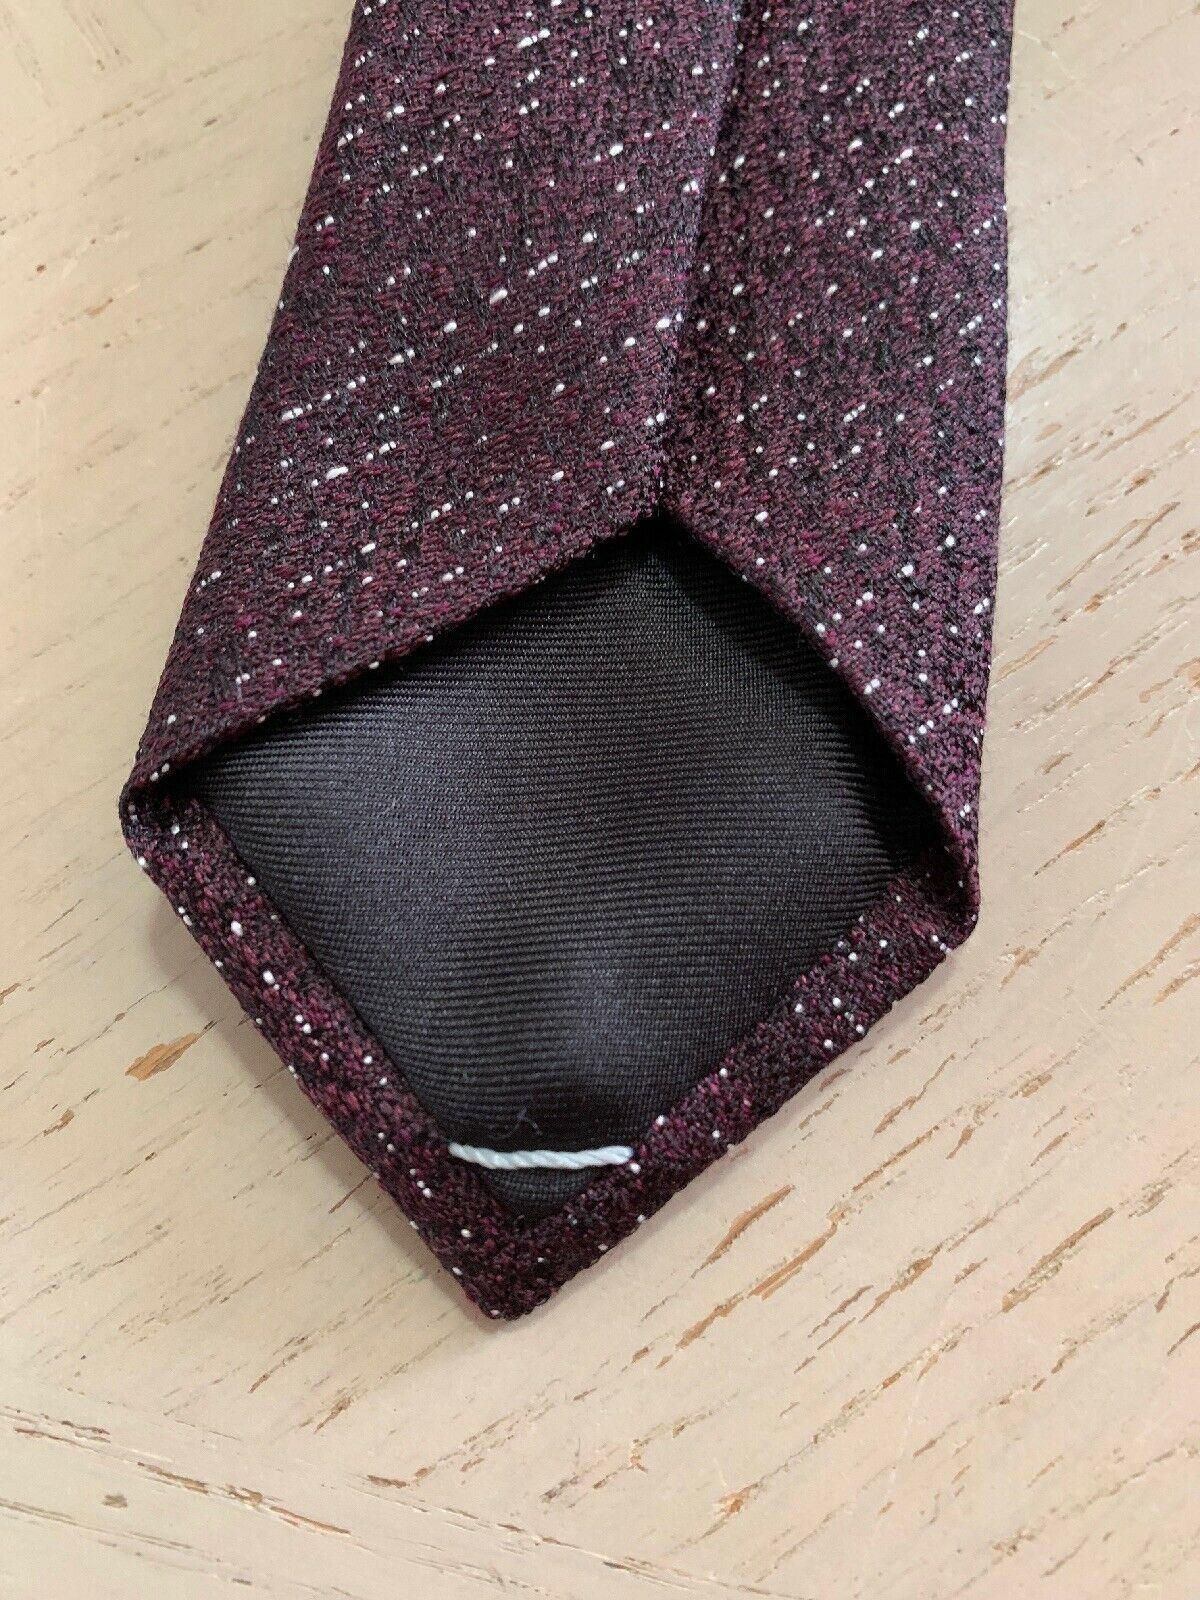 New $200 Dior Skinny Neck Tie Burgundy Hand made in Italy